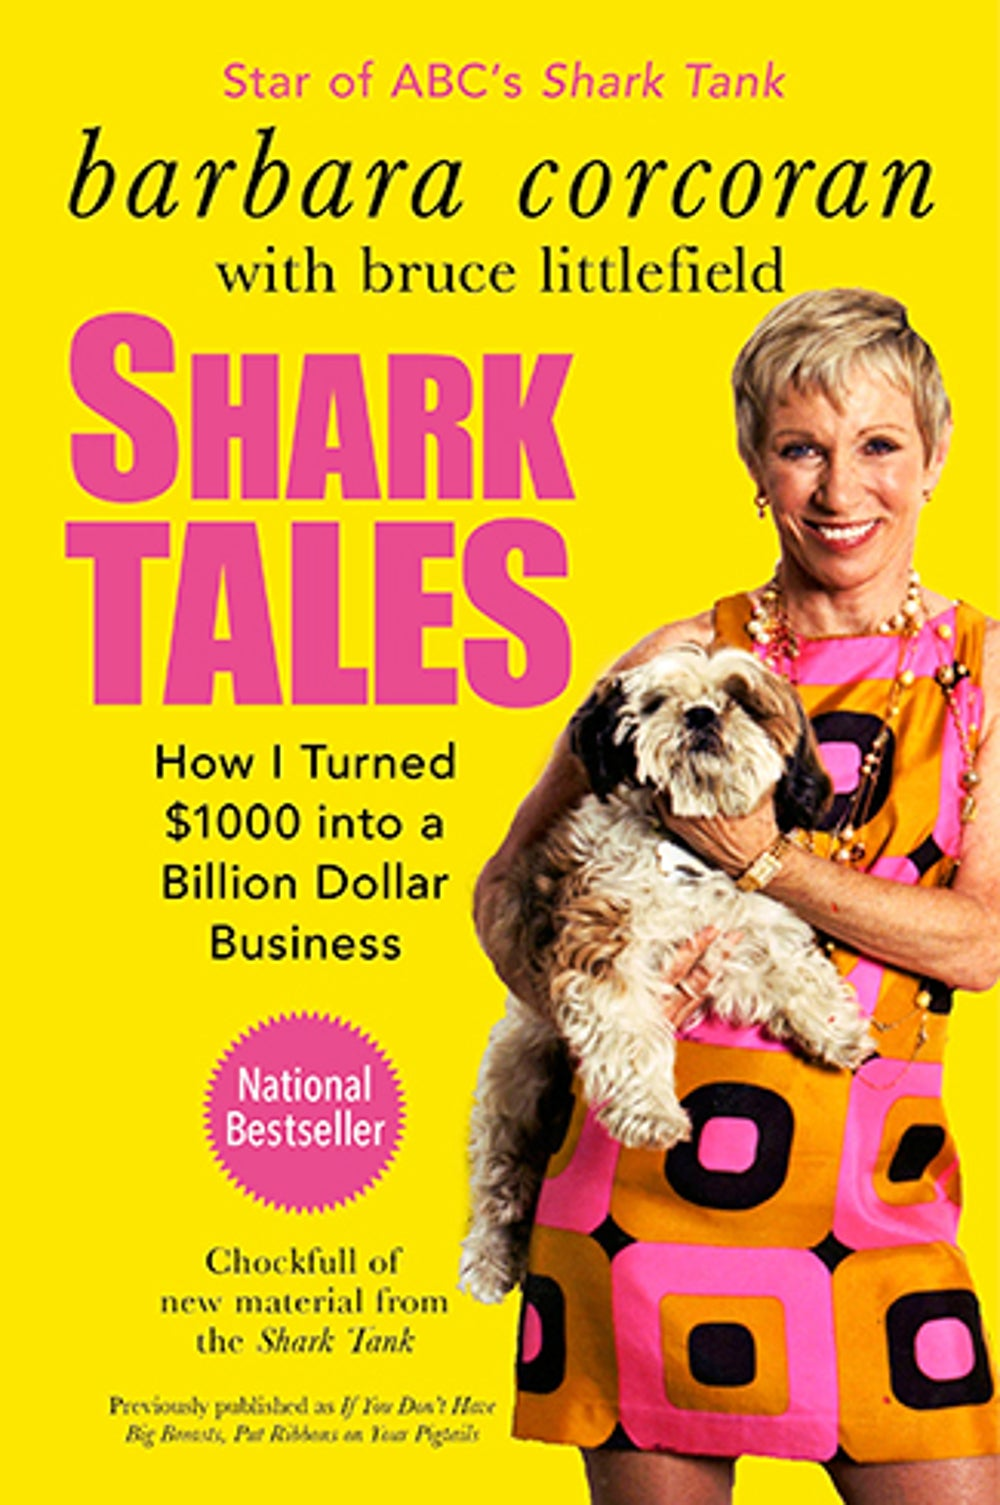 Shark Tales by Barbara Corcoran with Bruce Littlefield